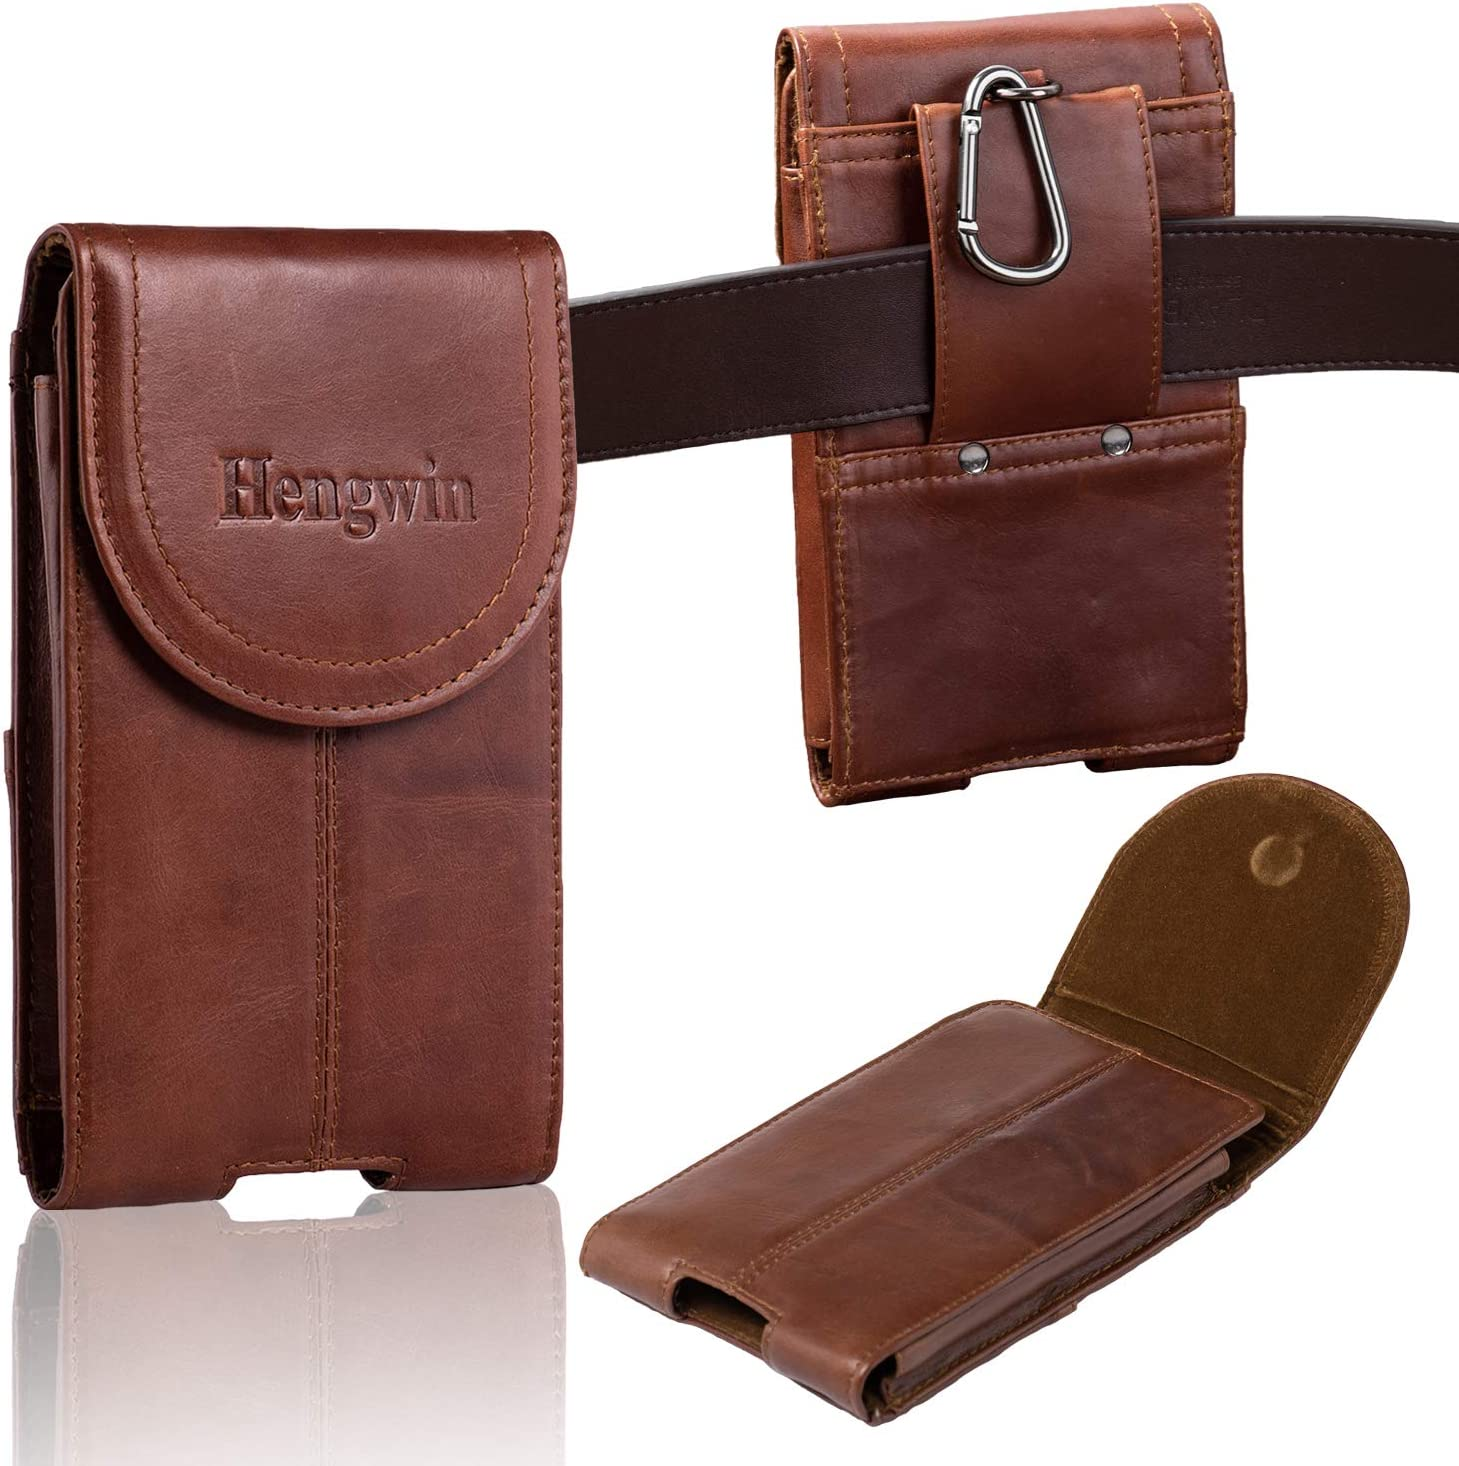 Hengwin Leather Cellphone Holster Case with Belt Clip Pouch Case for iPhone 11 Pro Max XS Max Belt Holster Pouch Belt Loop Phone Holder for Men Vertical Samsung Galaxy Note 10 9 8 Plus Holster -Brown